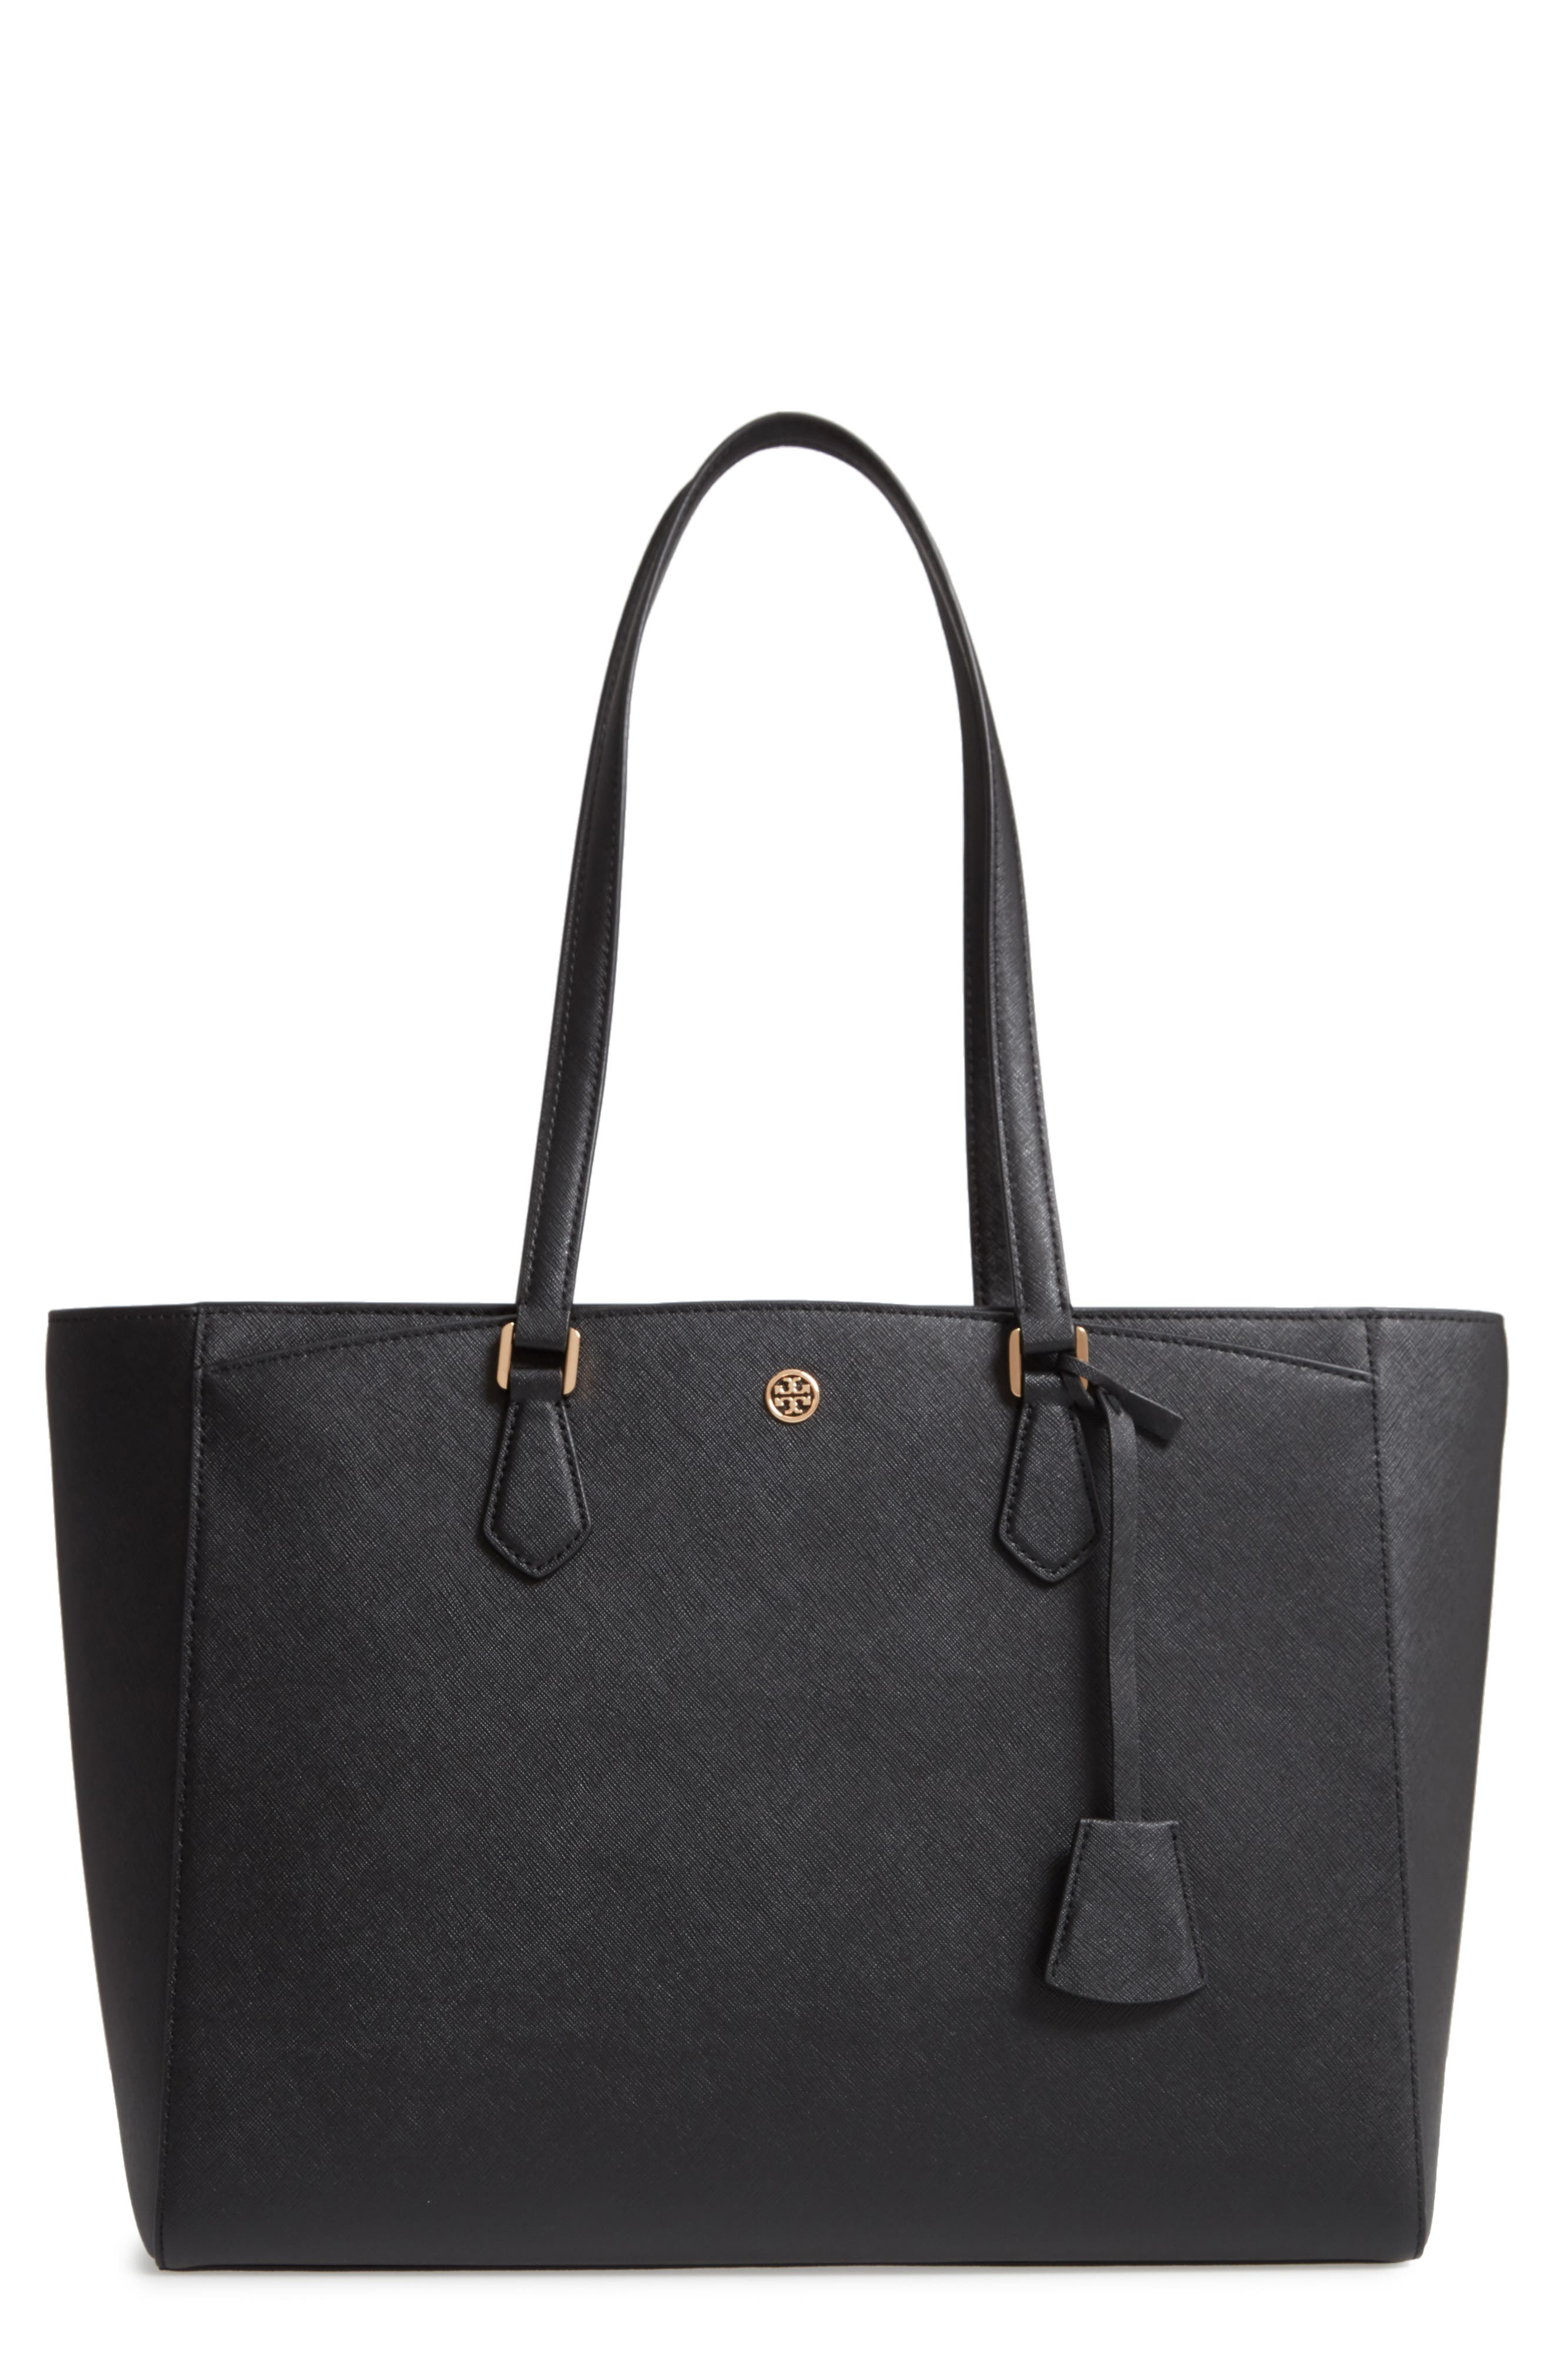 TORY BURCH, Robinson Saffiano Leather Tote, Main thumbnail 1, color, BLACK